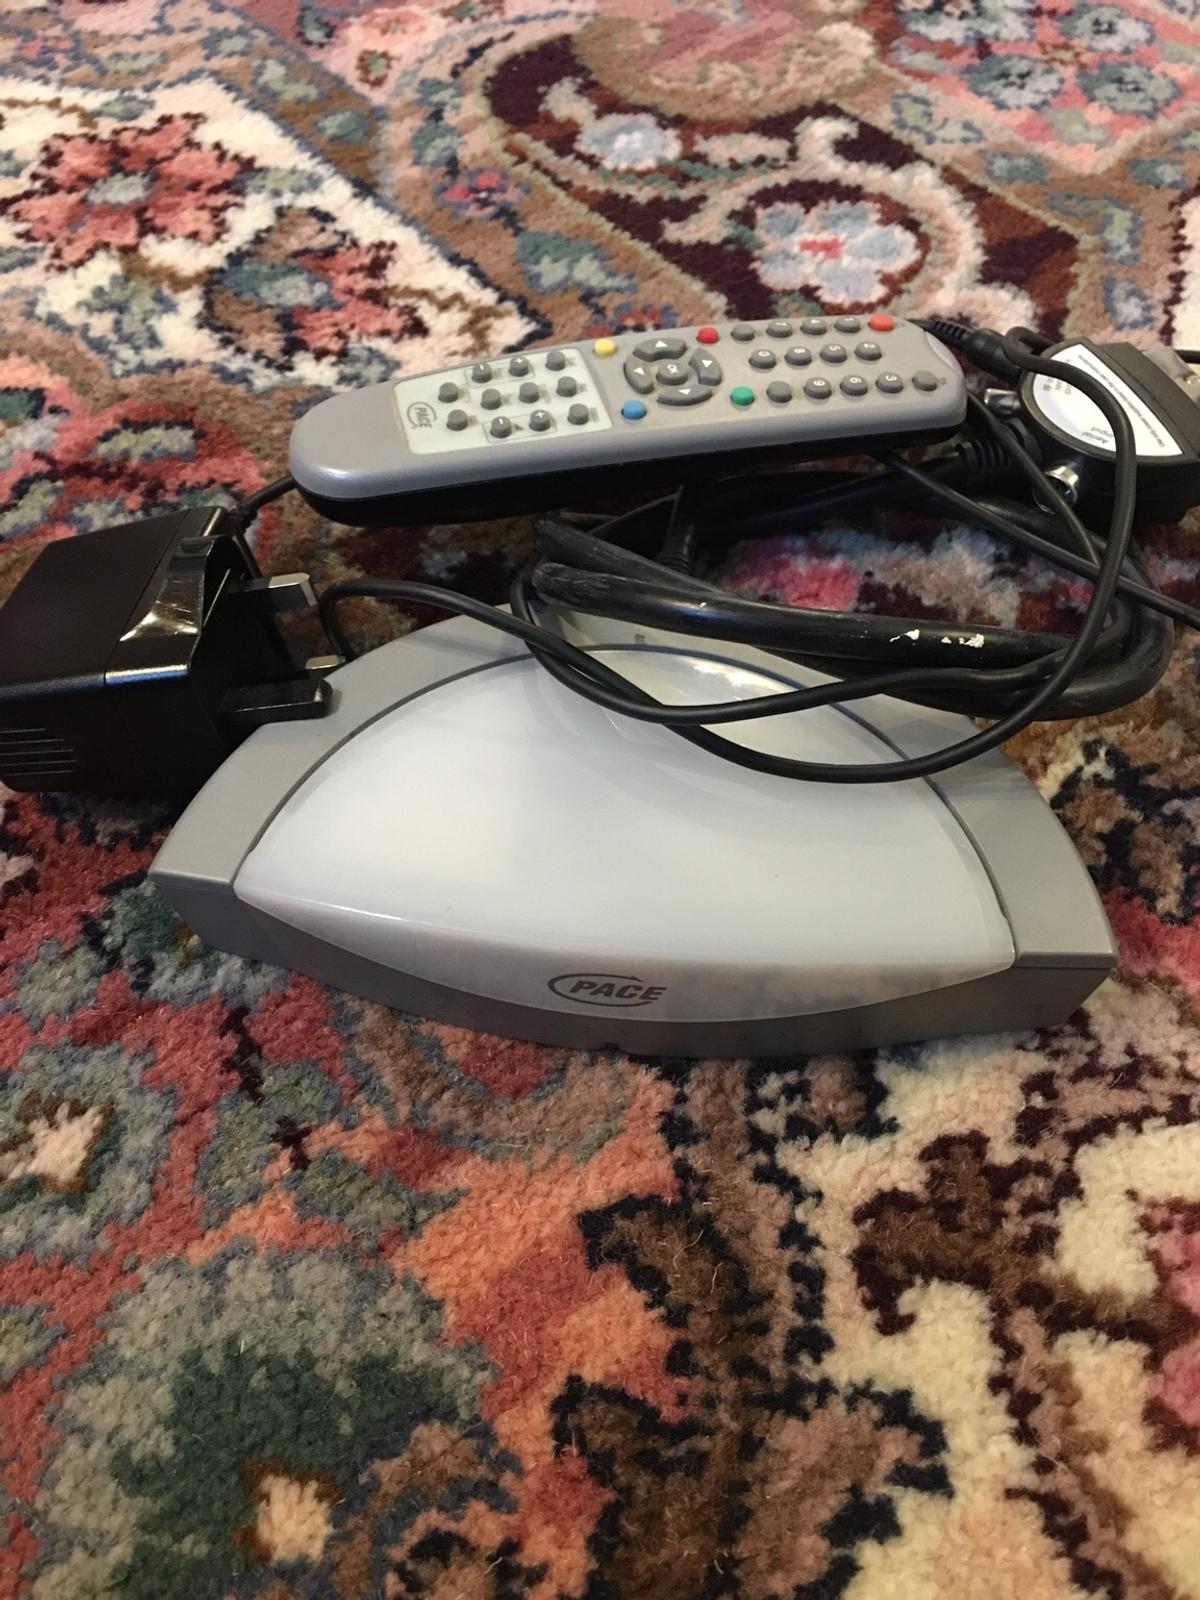 A Pace Freeview TV box